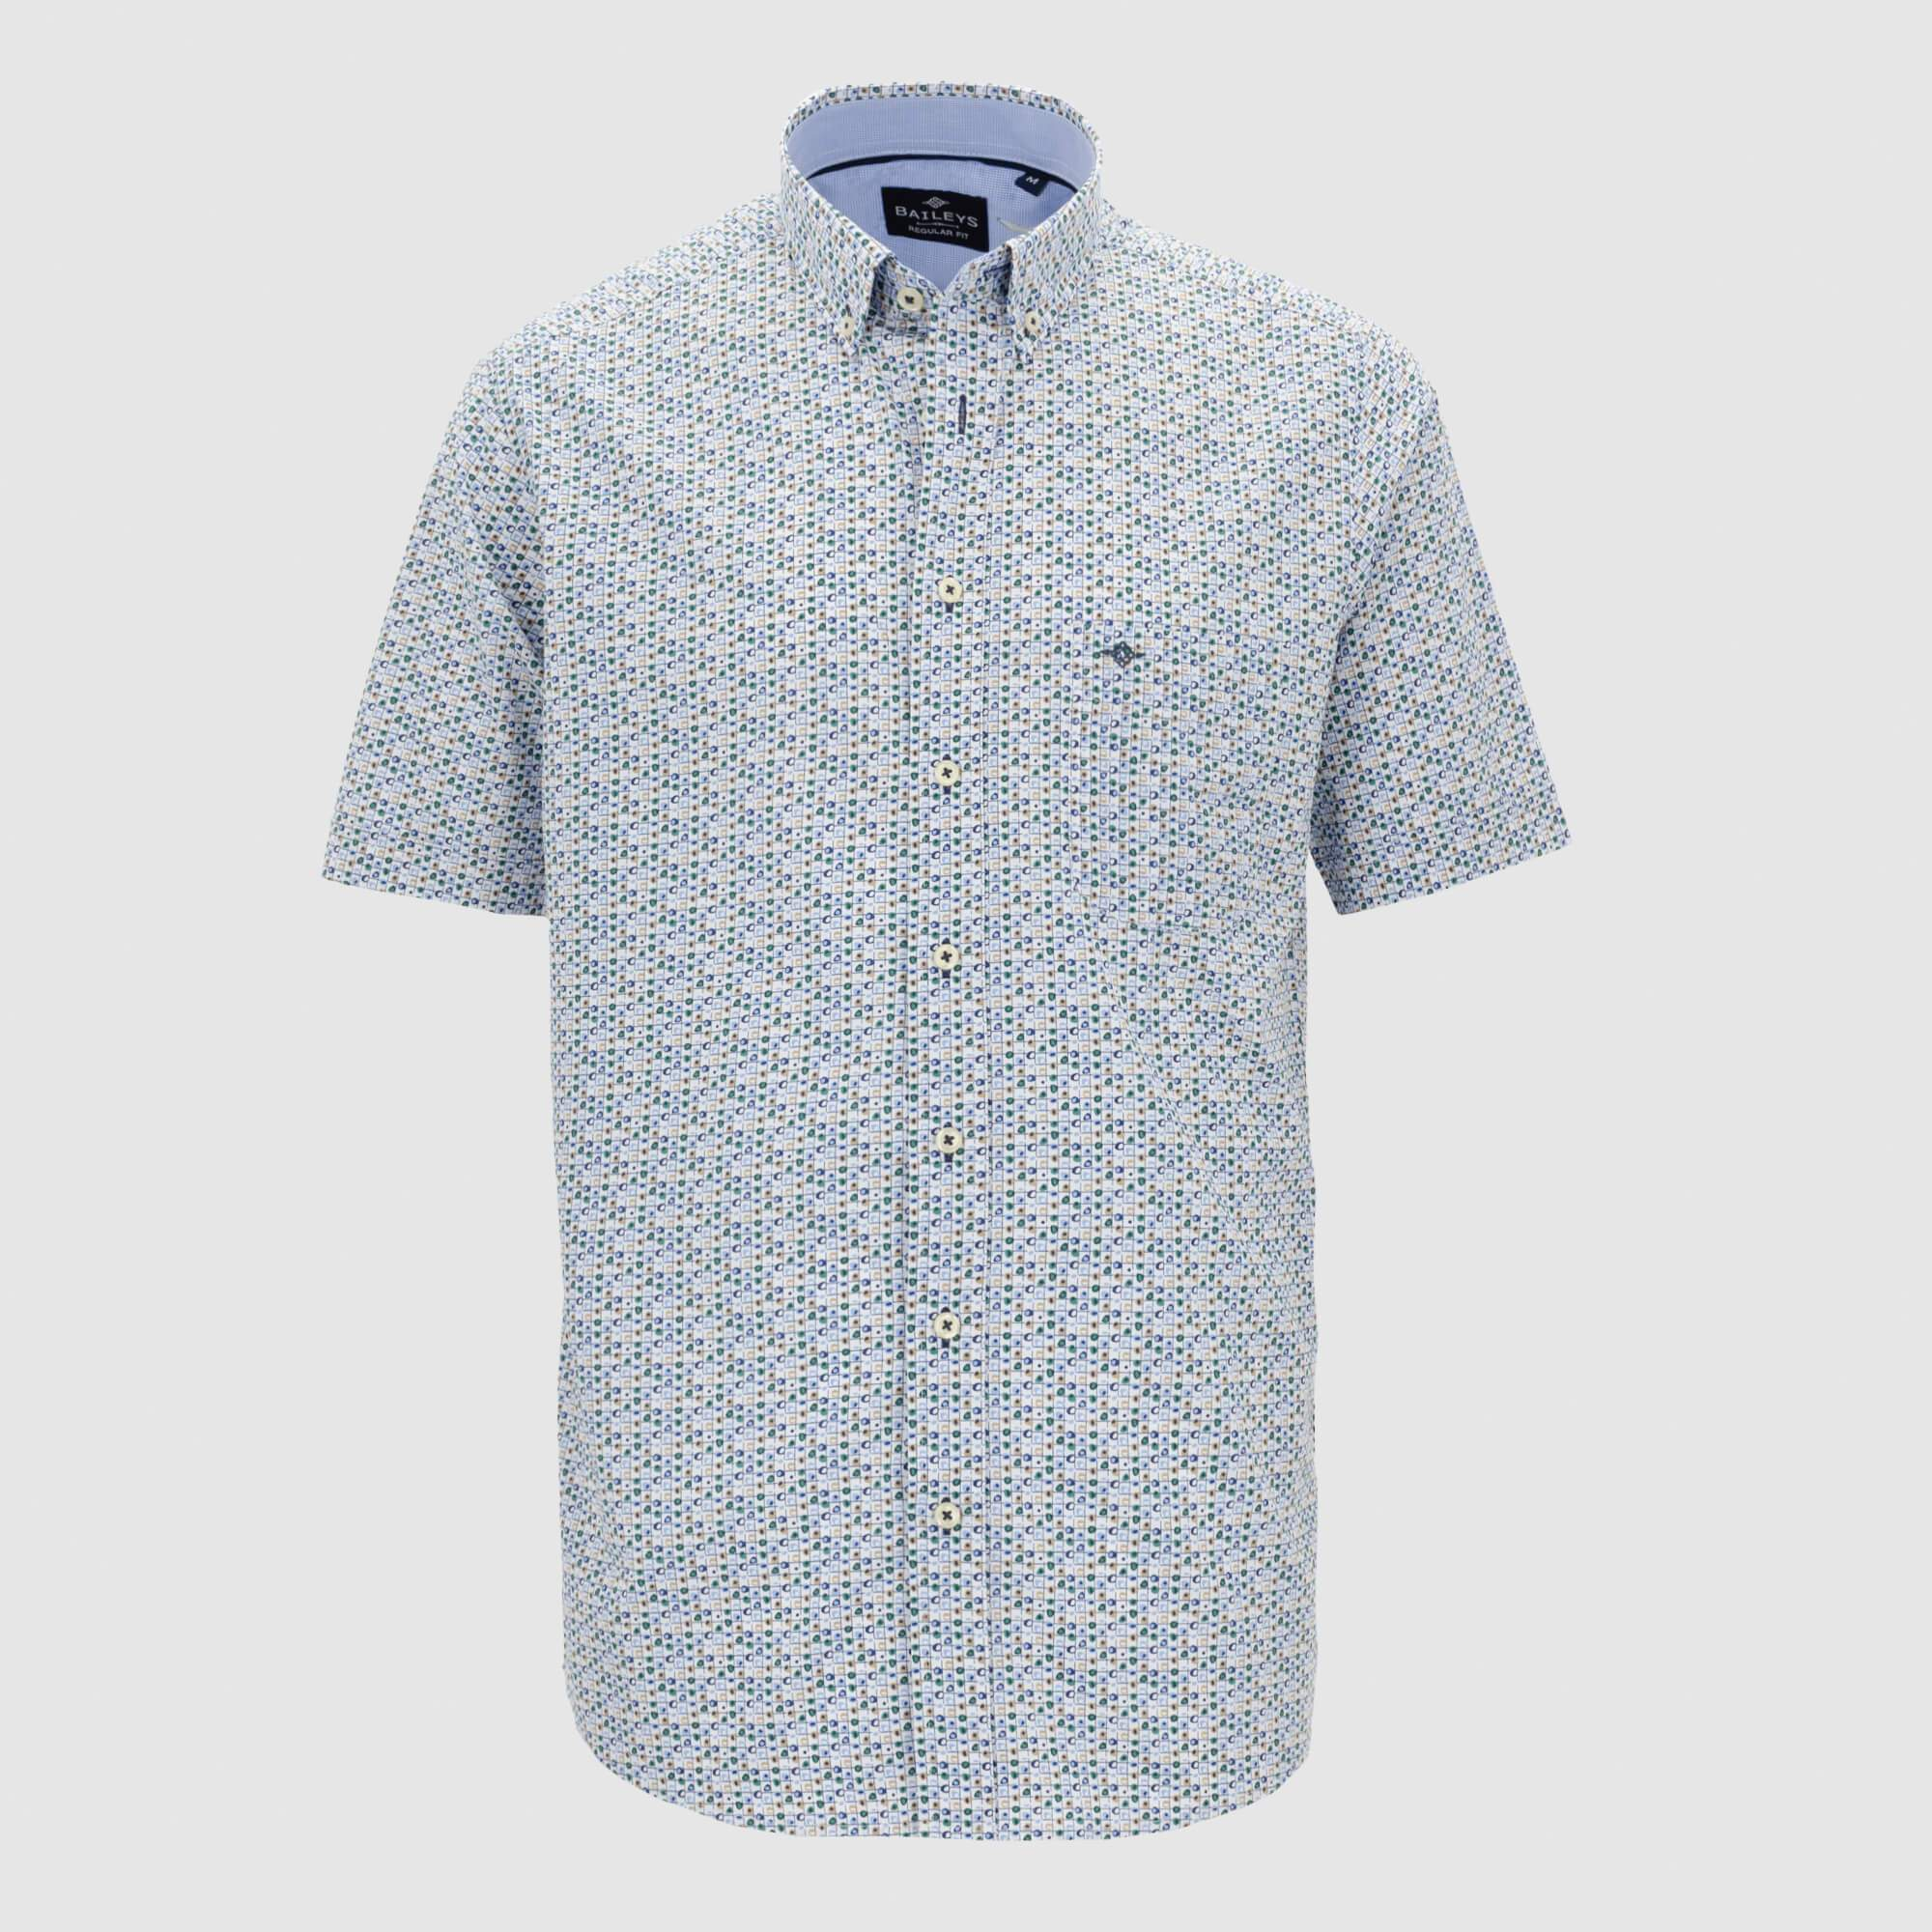 Camisa estampada manga corta regular fit 106693